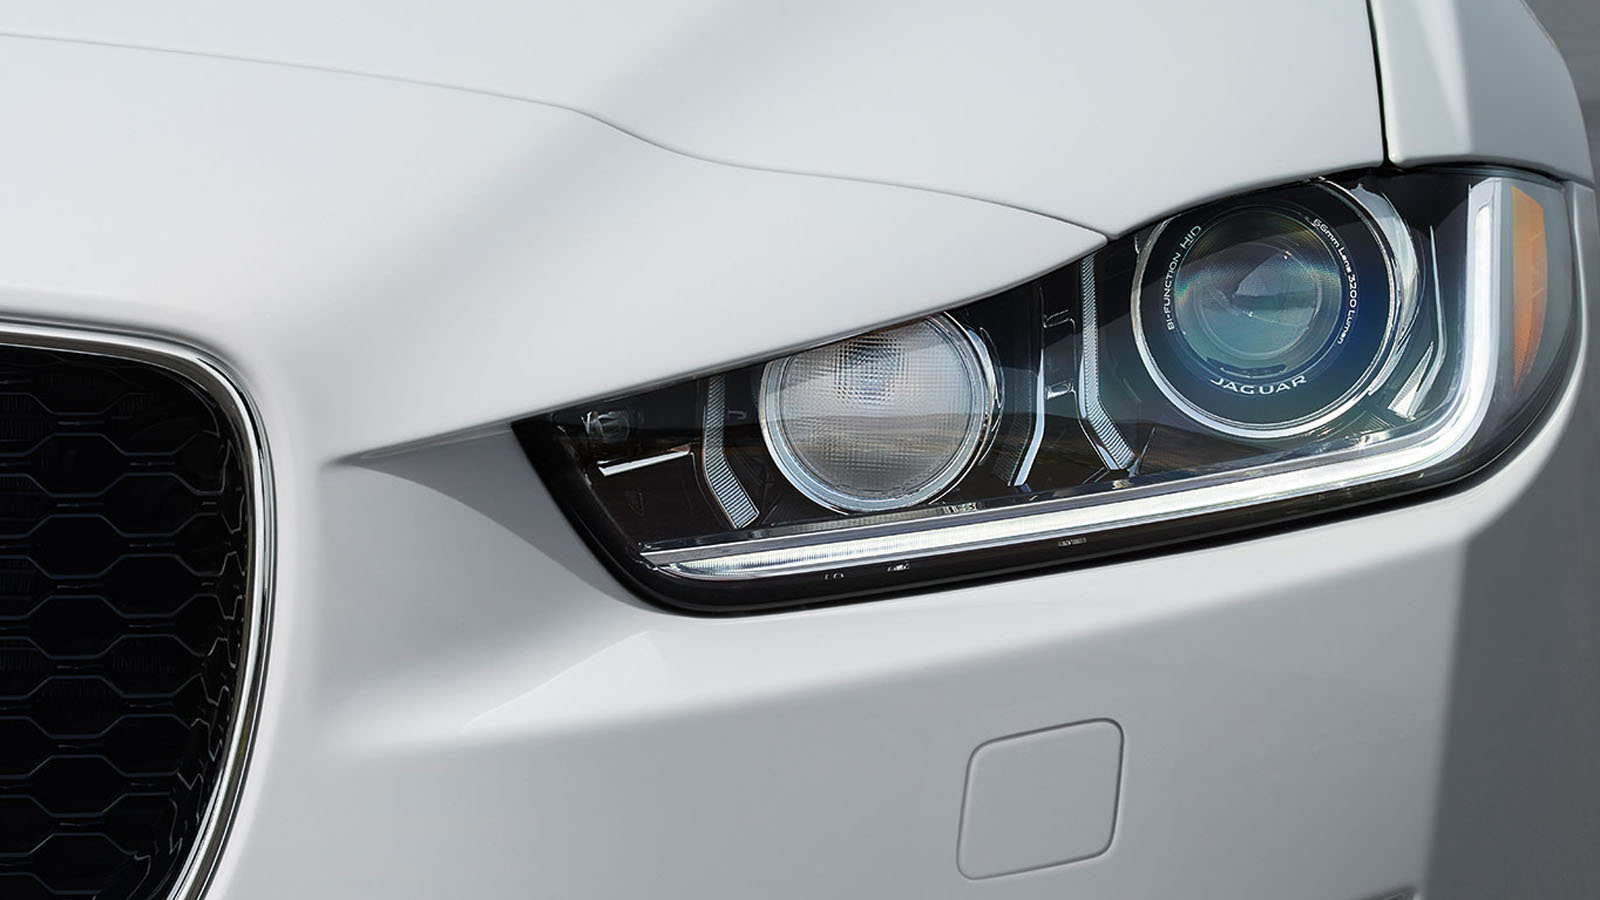 Close-up of XE headlight.